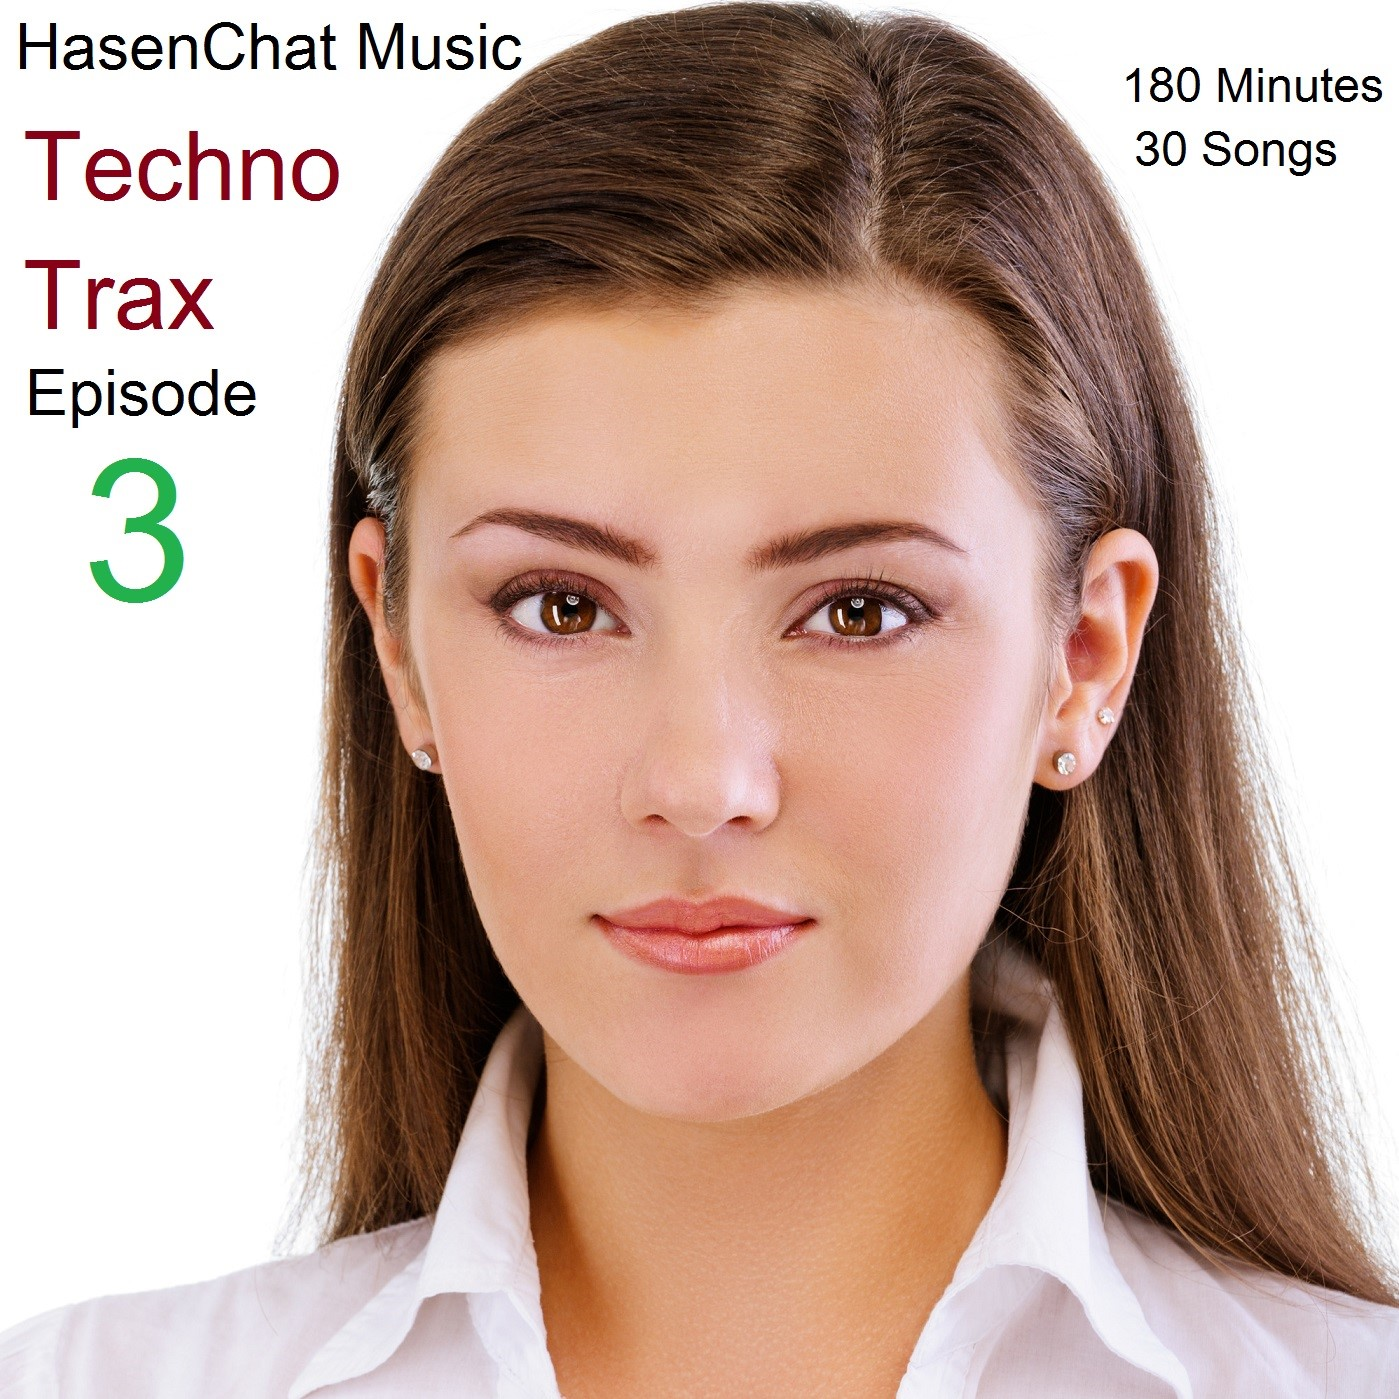 HasenChat Music - Techno Trax - Episode 3